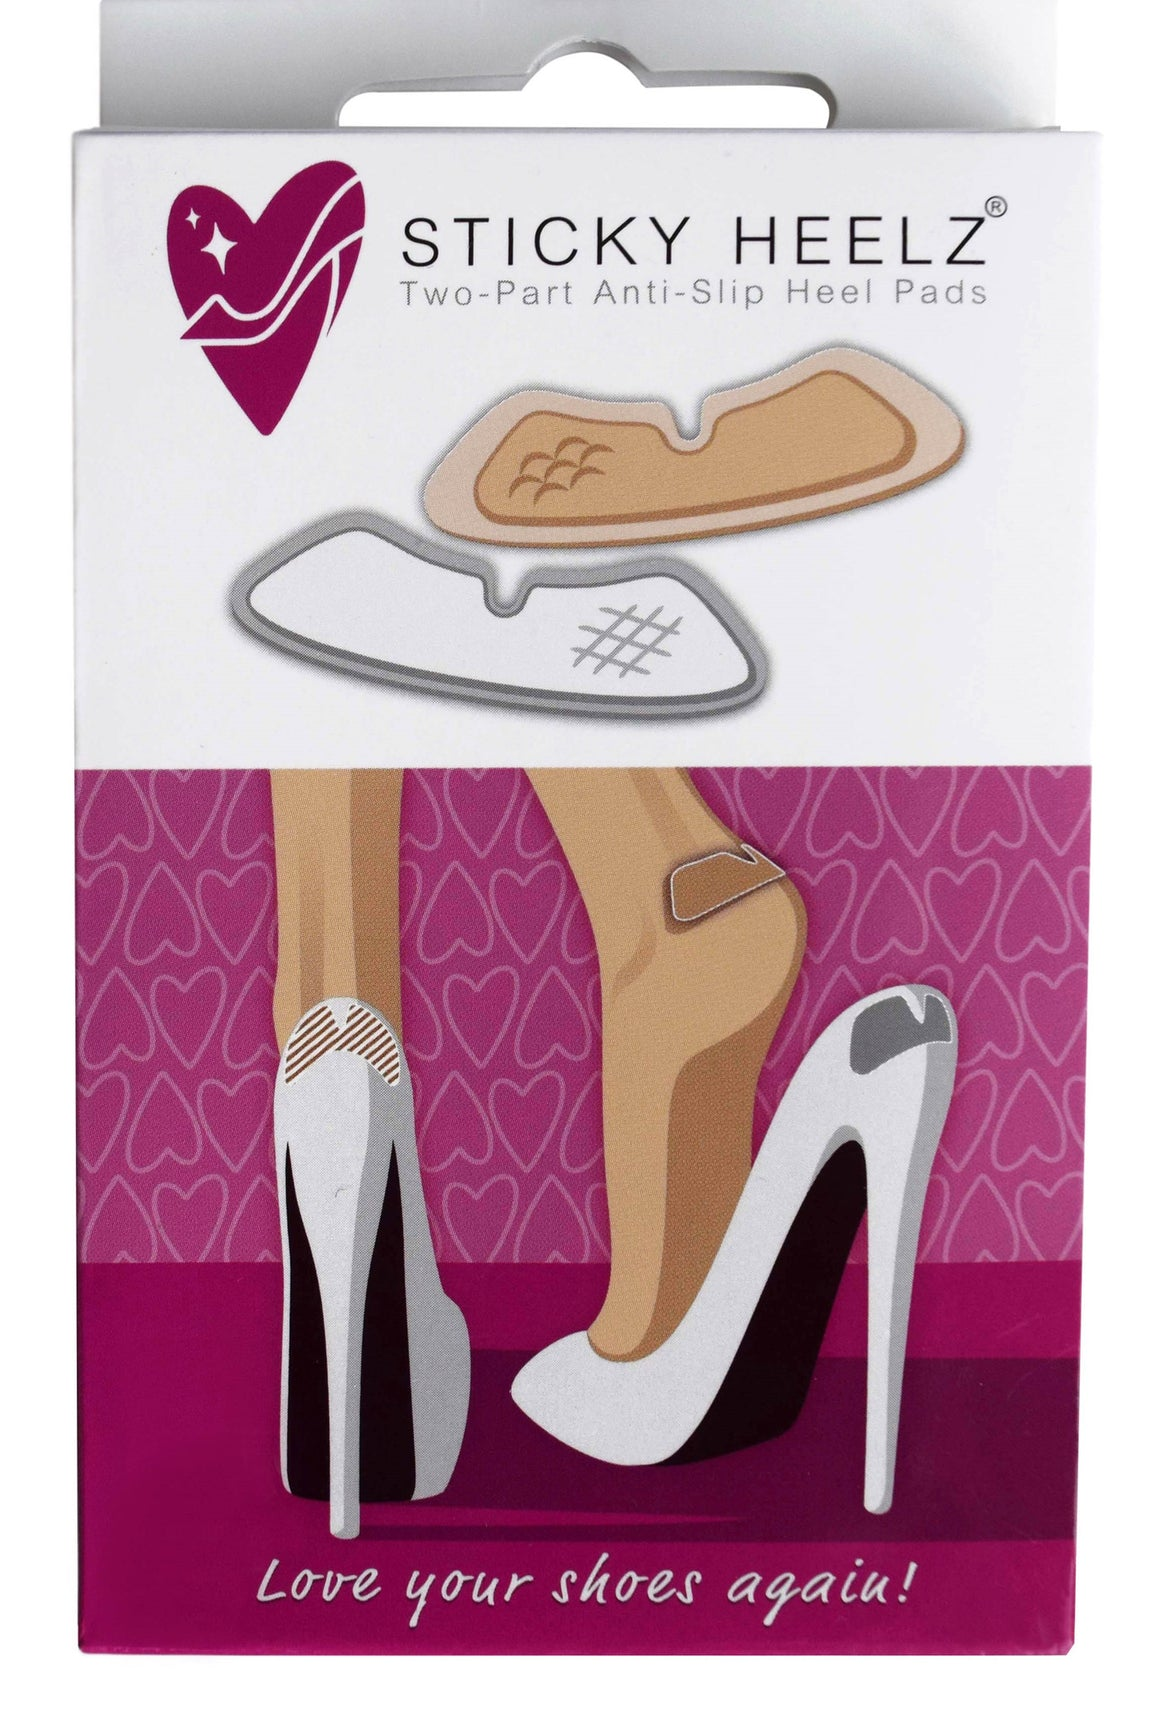 6 PACK WHITE STICKY HEELZ HEEL PADS